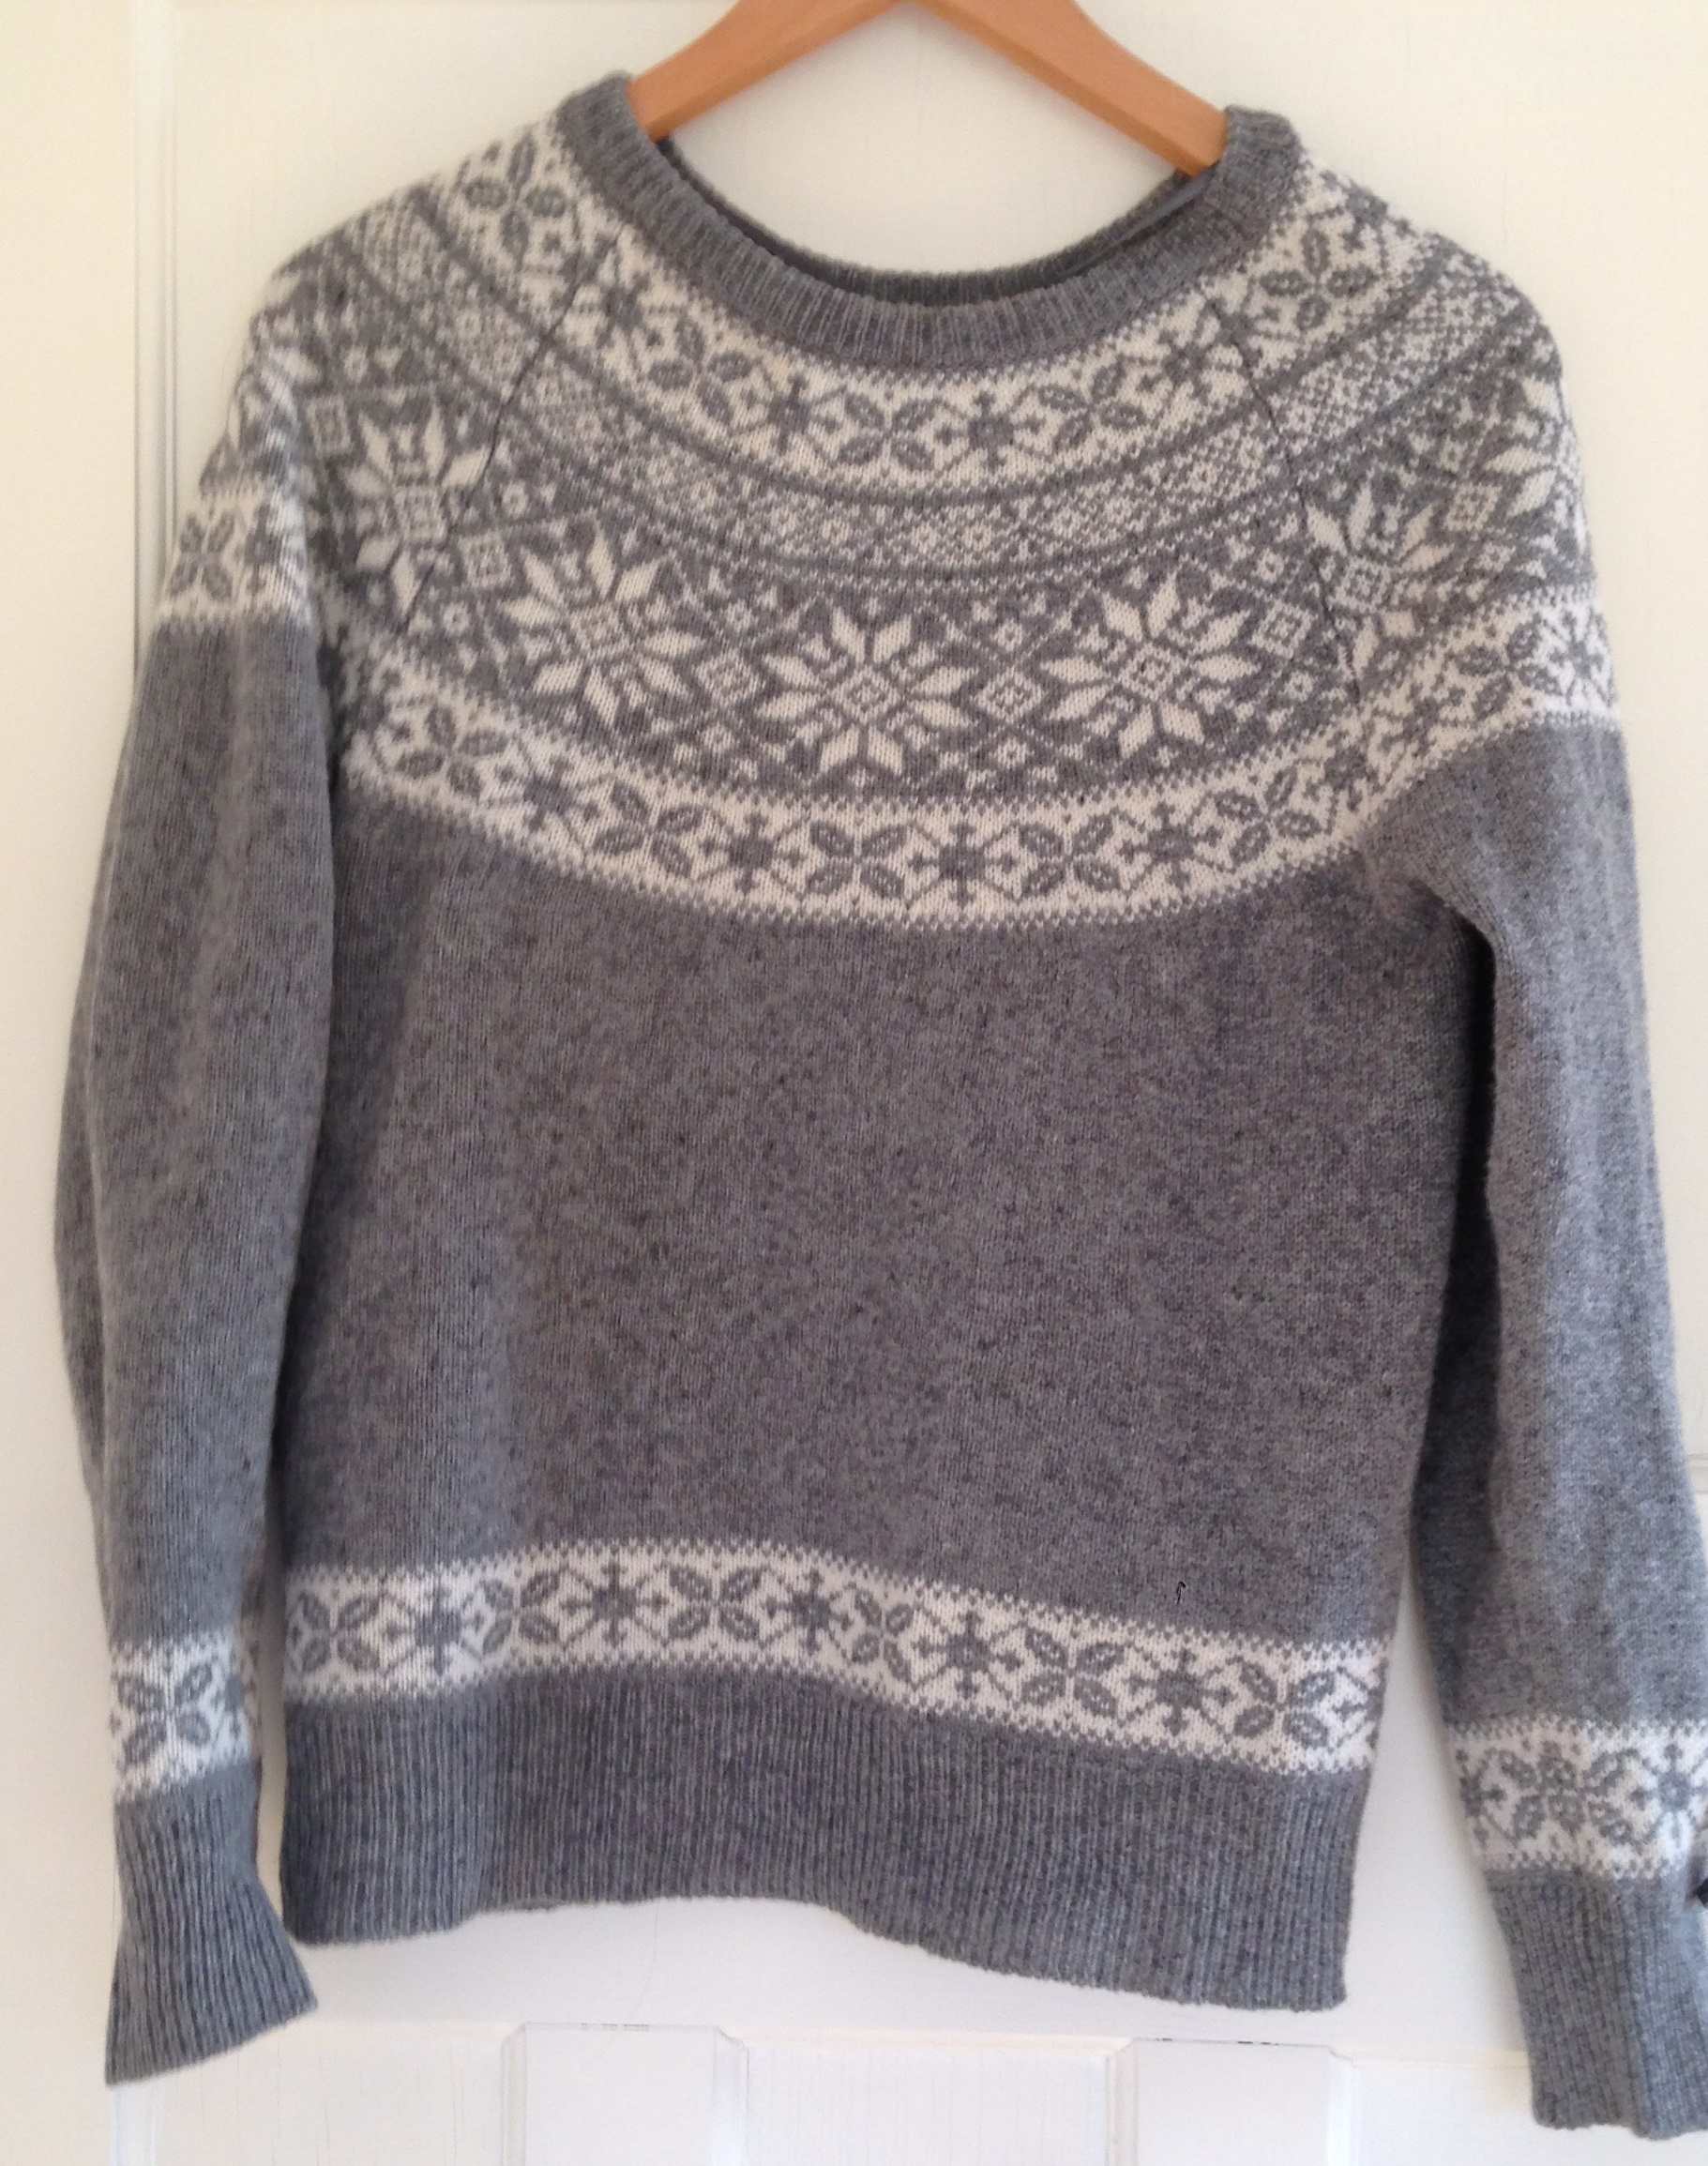 Winter Woolies From Primark Money Saving Blog Mrs